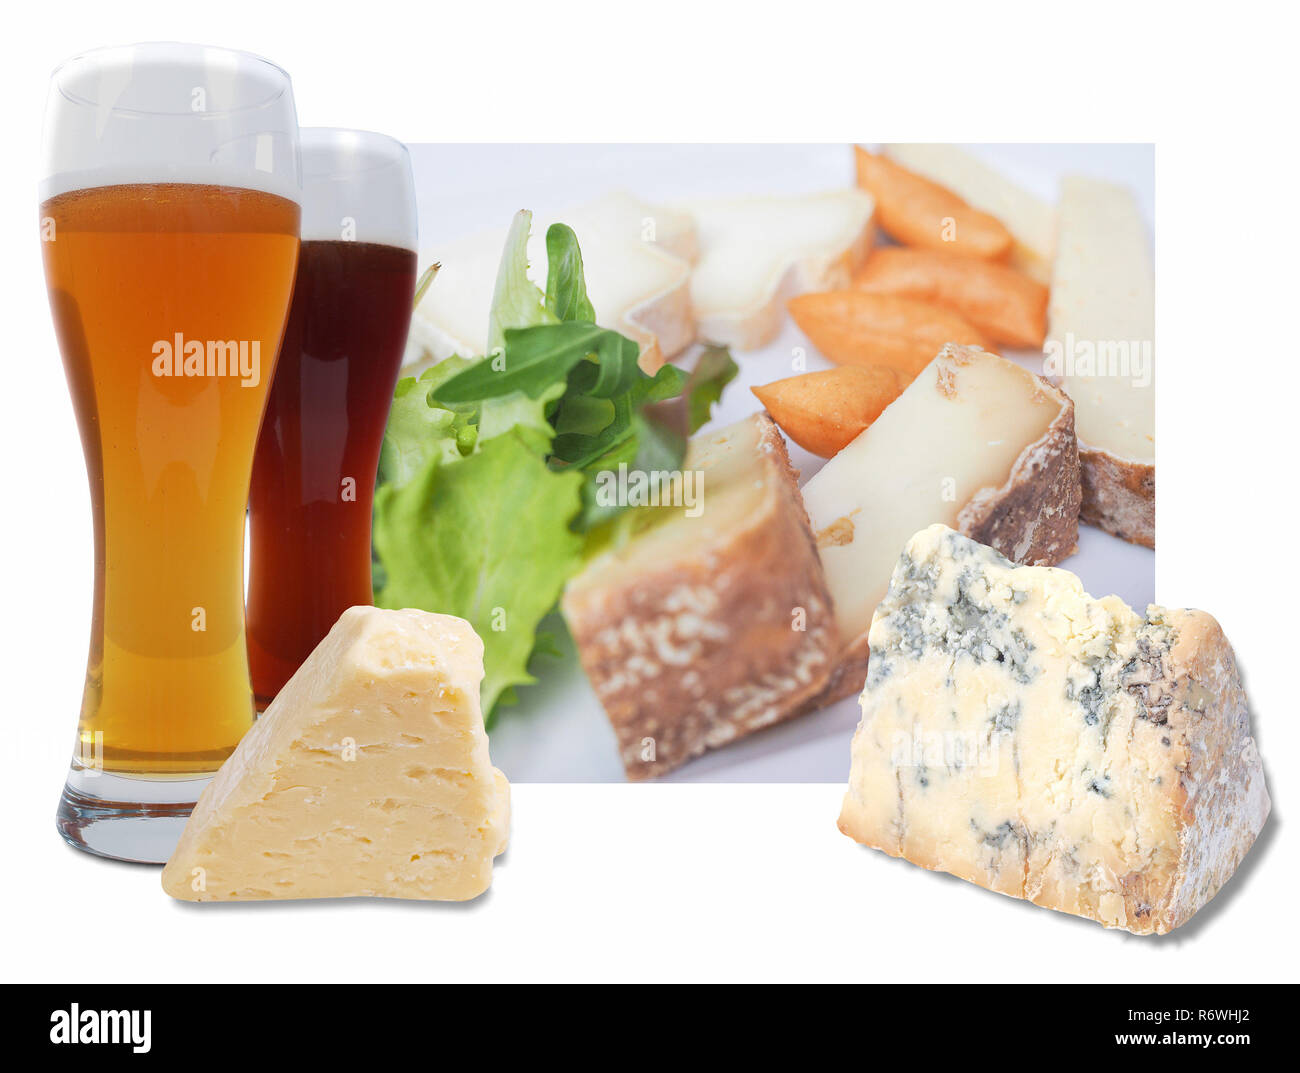 Cheese and beer aperitif infographic - Stock Image